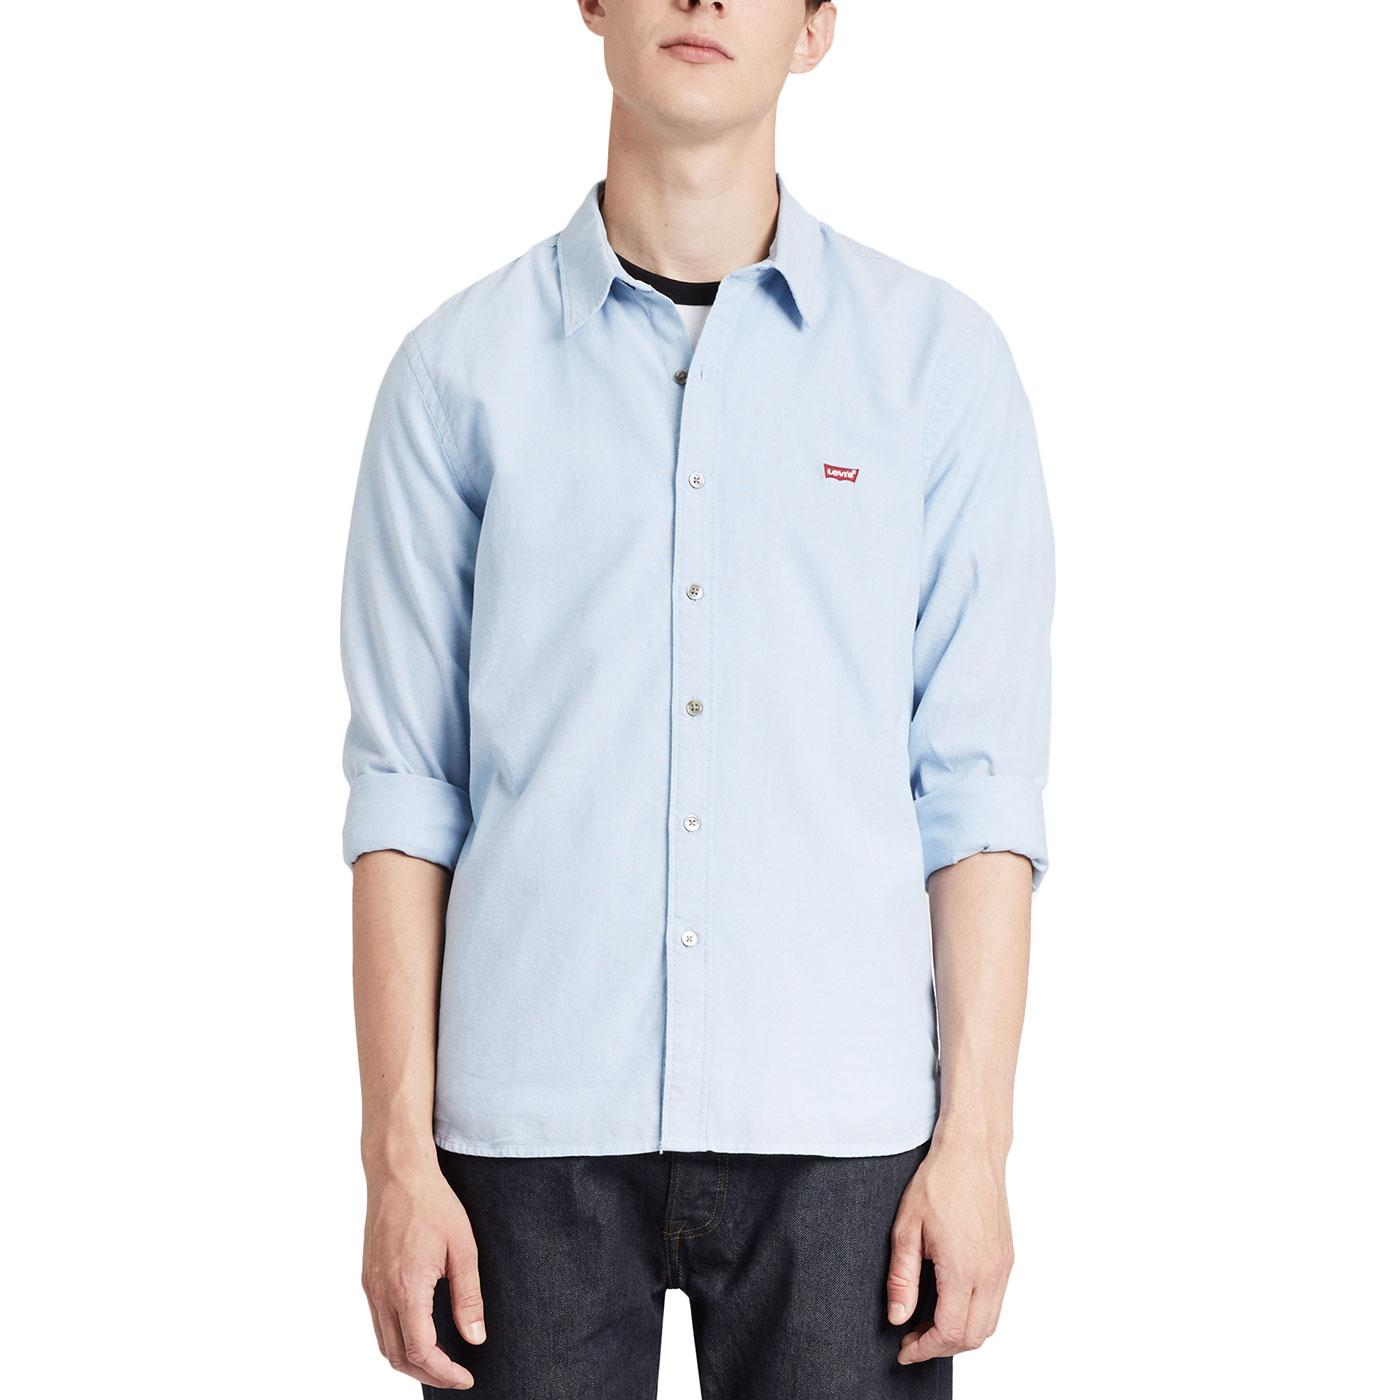 LEVI'S Battery HM Retro Mod Oxford Shirt (Allure)